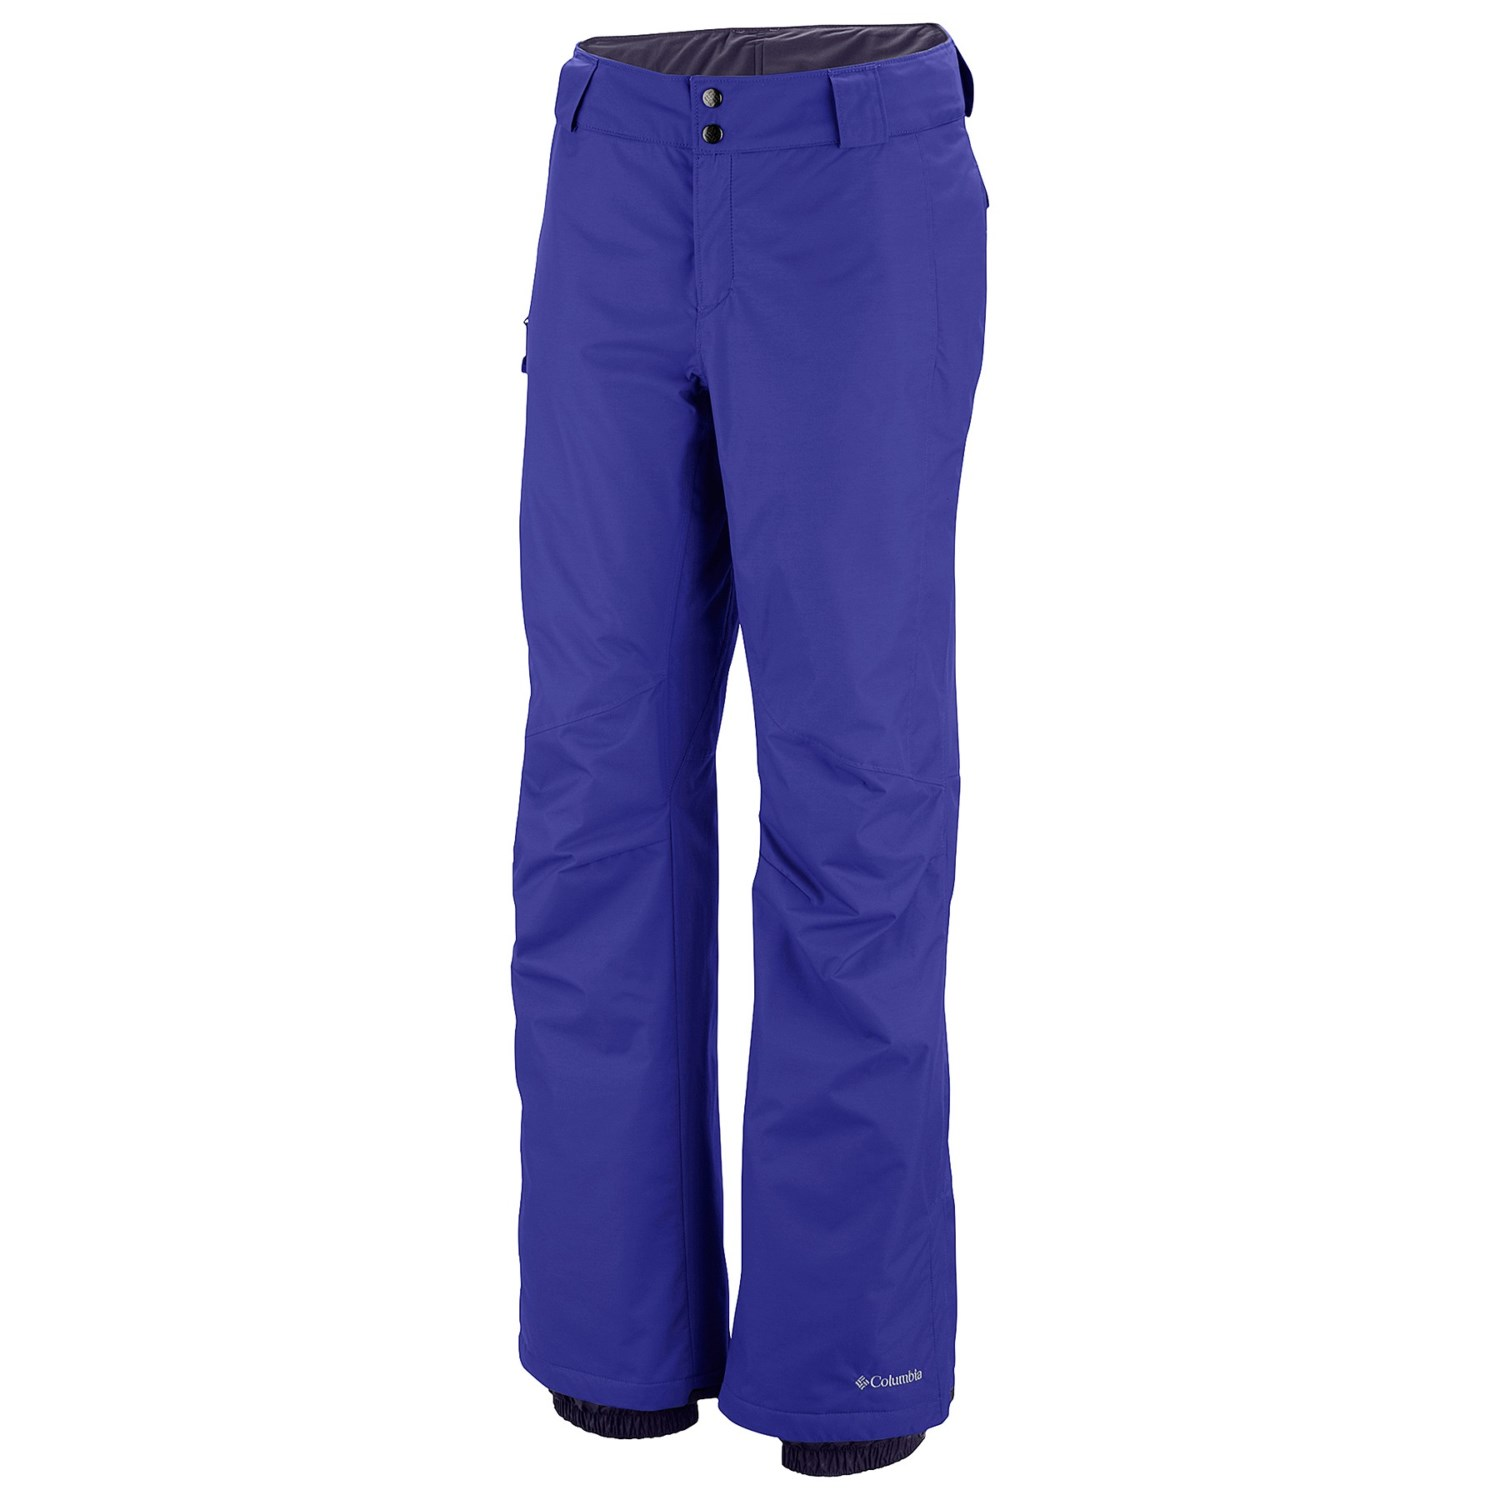 Keep in mind that these snow pants do NOT stretch. 4X W 54 in, H 64 in. 5X W 58 in, H 68 in. 6X W 62 in, H 72 in. Snow Country Outerwear, teal, Plus sizes 1X-6X in regular and short lengths.